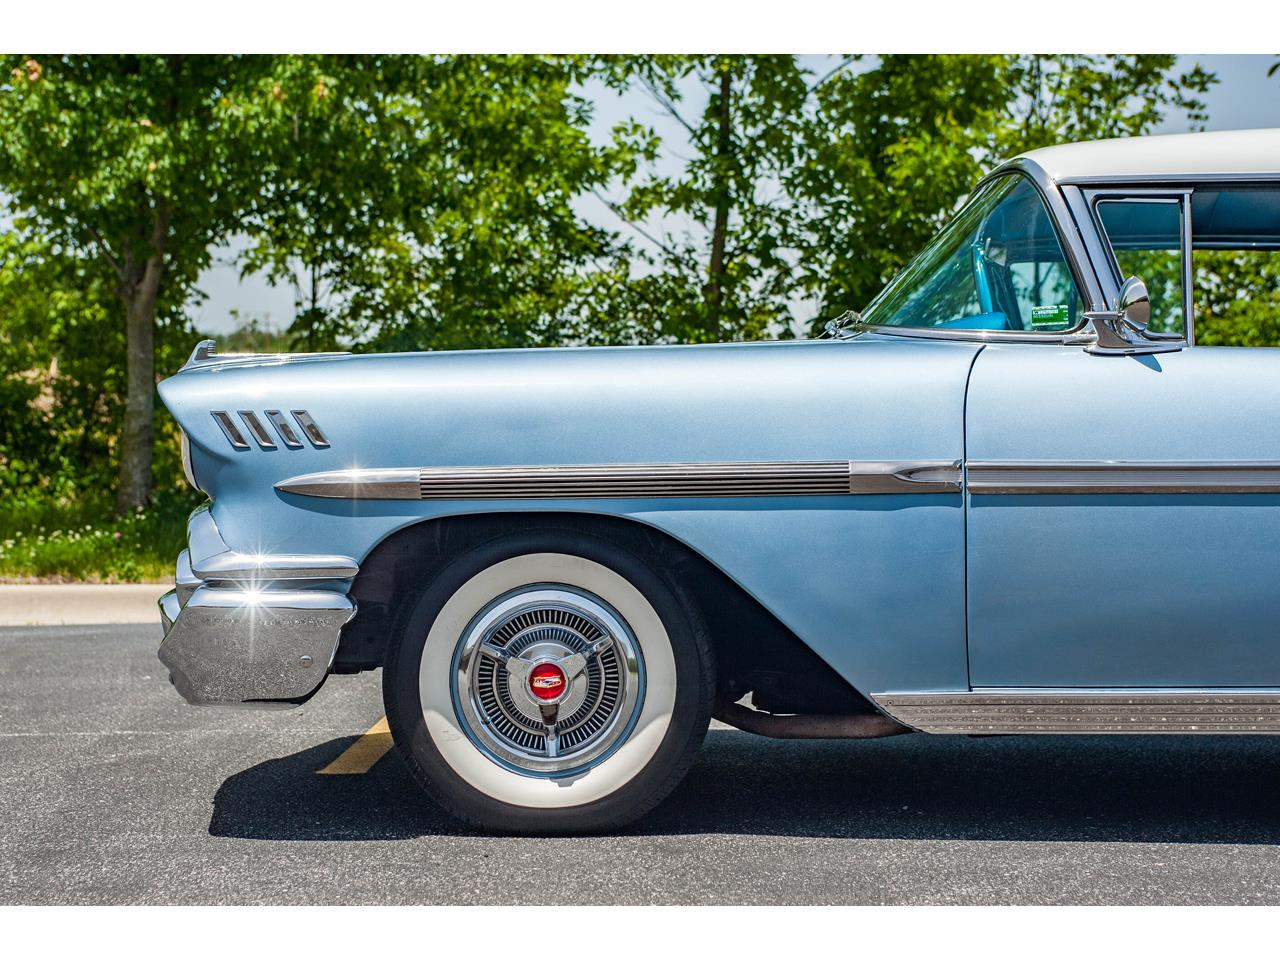 Large Picture of '58 Chevrolet Impala located in Illinois Offered by Gateway Classic Cars - St. Louis - QB9Q